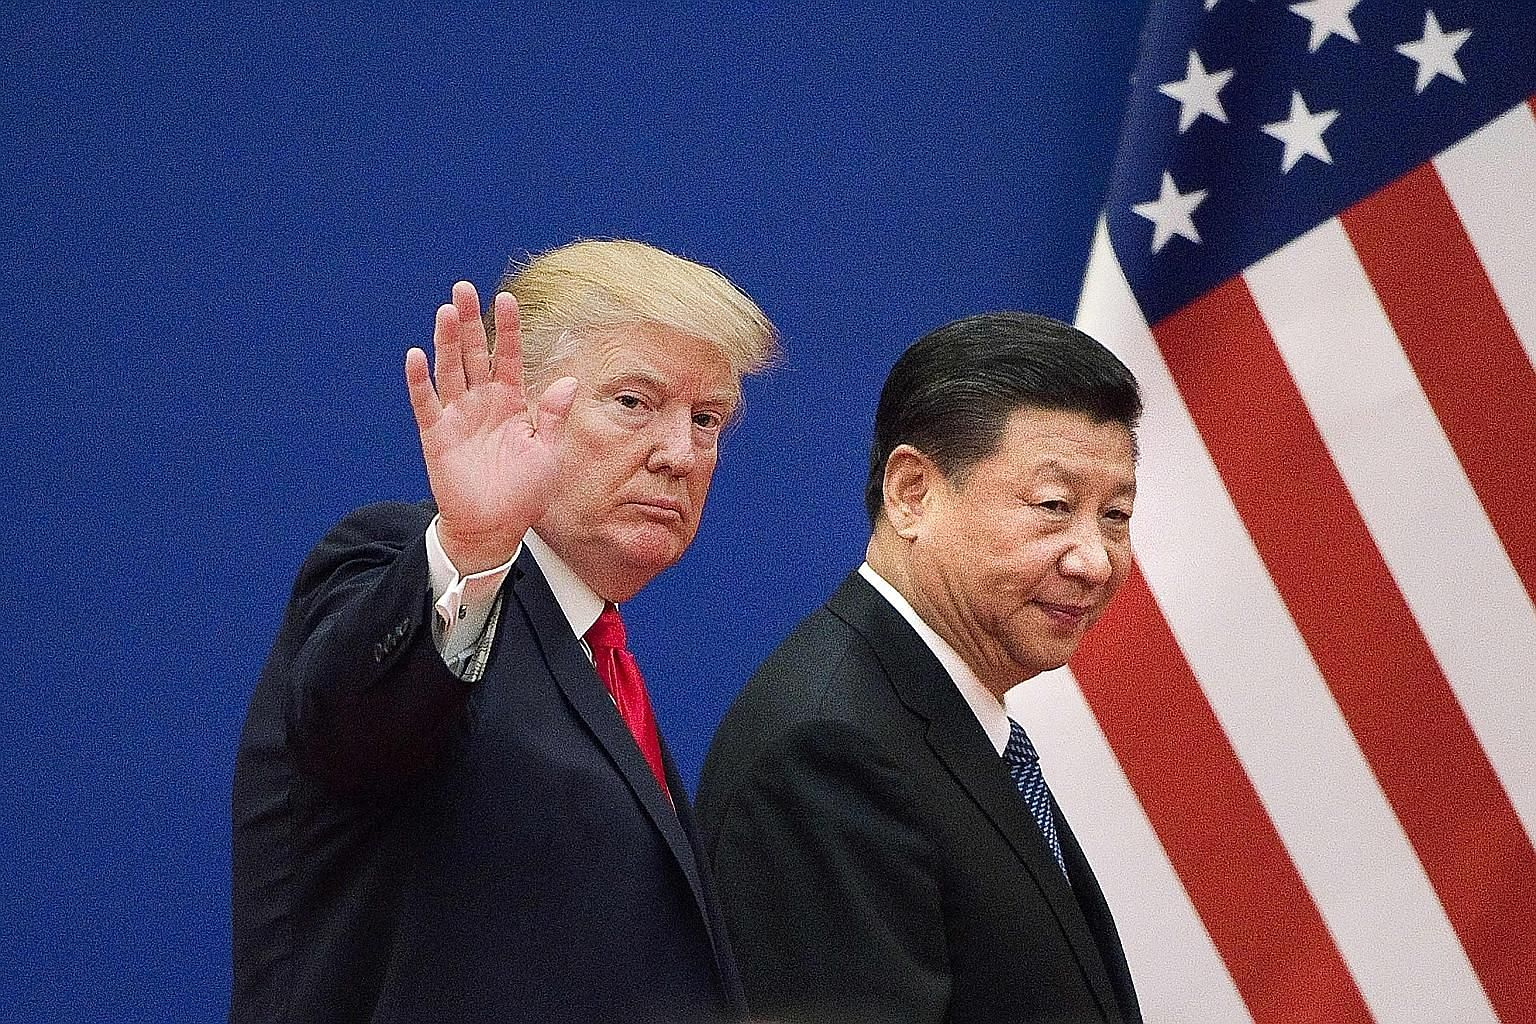 US President Donald Trump with Chinese President Xi Jinping in Beijing in 2017. Analysts credited the leaders for pulling their economies back from the brink.